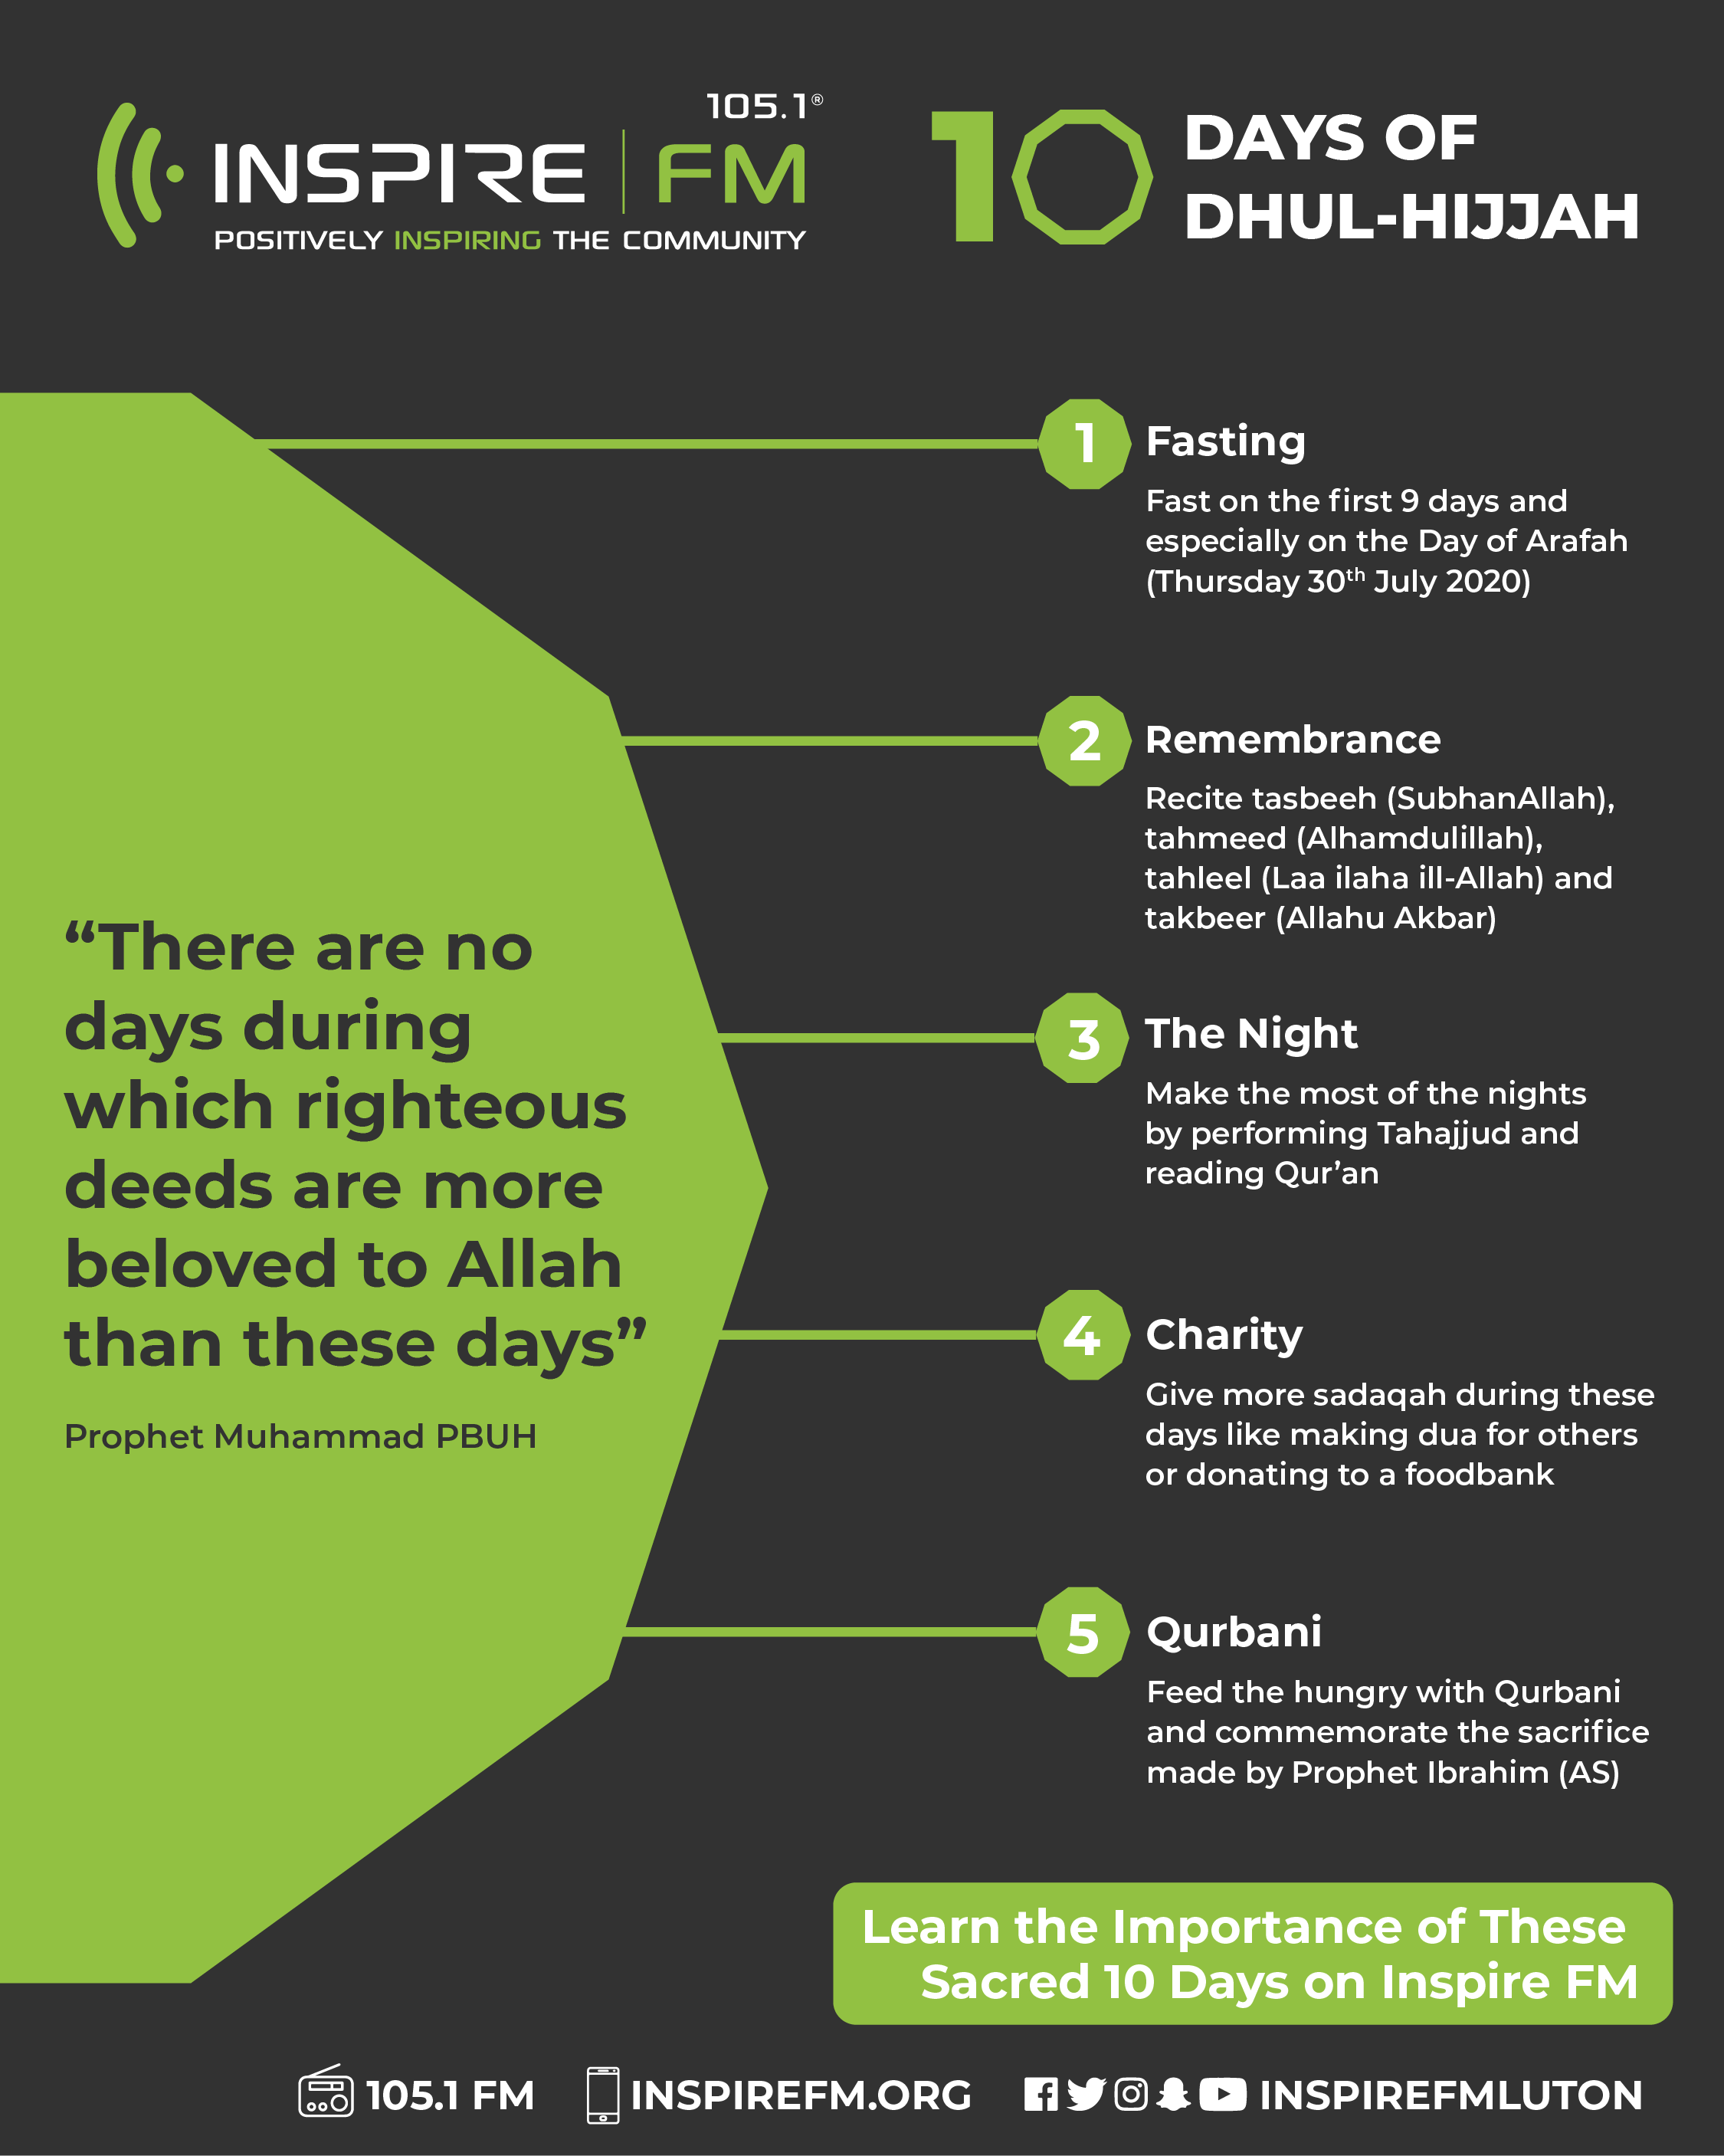 """""""There are no days during which righteous deeds are more beloved to Allah than these days"""" Prophet Muhammad PBUH. 1. Fasting Fast on the first 9 days and especially on the Day of Arafah (Thursday 30th July 2020). 2. Remembrance Recite tasbeeh (SubhanAllah), tahmeed (Alhamdulillah), tahleel (Laa ilaha ill-Allah) and takbeer (Allahu Akbar). 3. The Night Make the most of the nights by performing Tahajjud. 4. Charity Give more sadaqah during these days . 5. Qurbani Feed the hungry with Qurbani"""